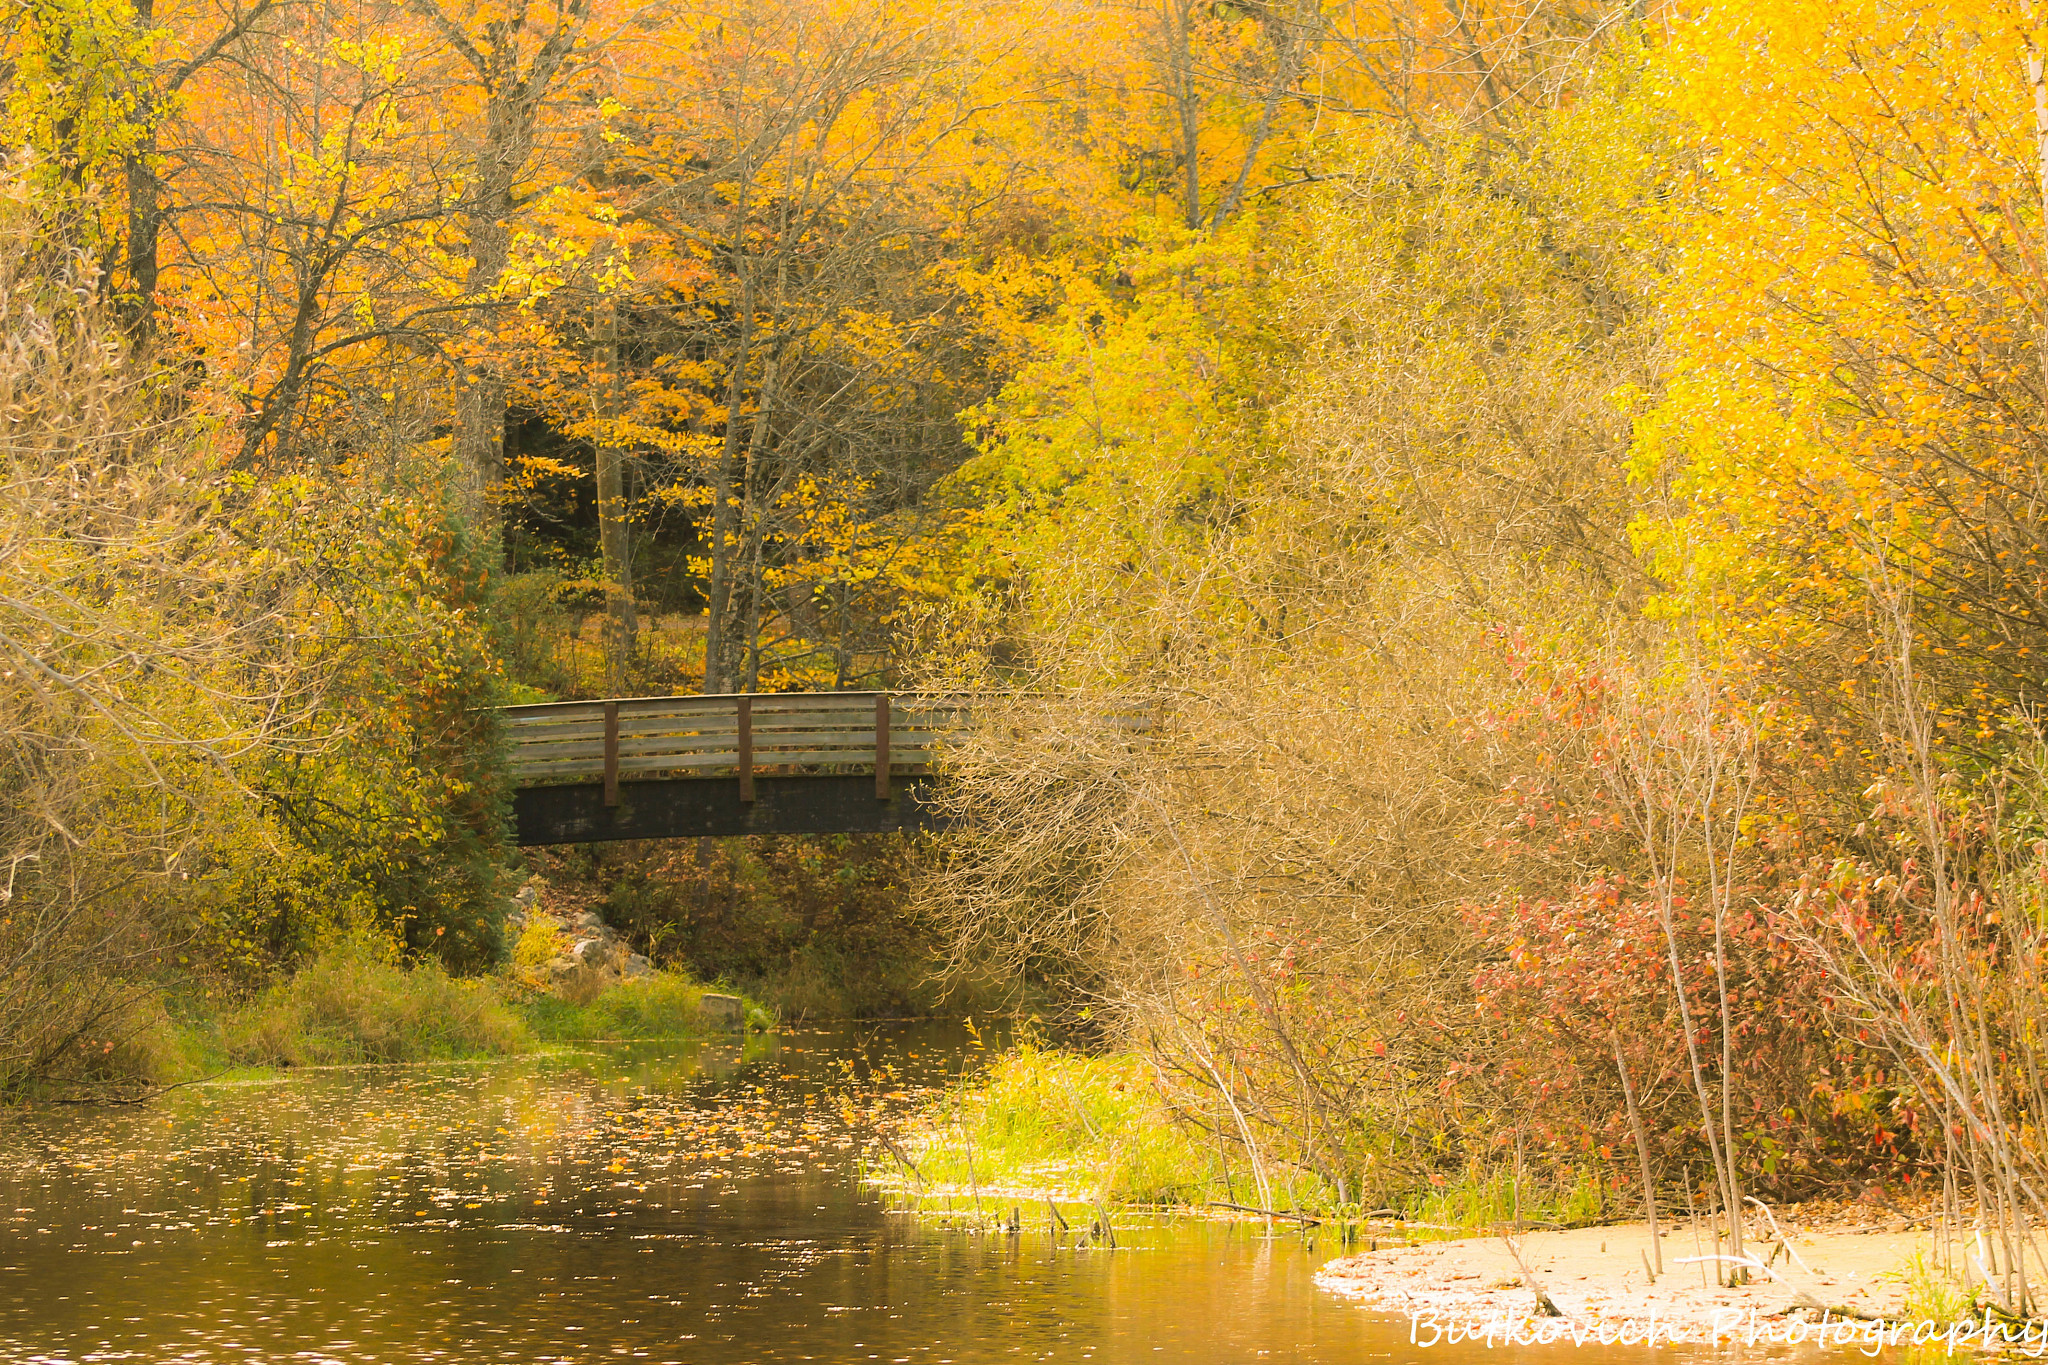 Brilliant fall foliage paints the landscape above Silver Creek in Manitowoc with a rich golden yellow palette.